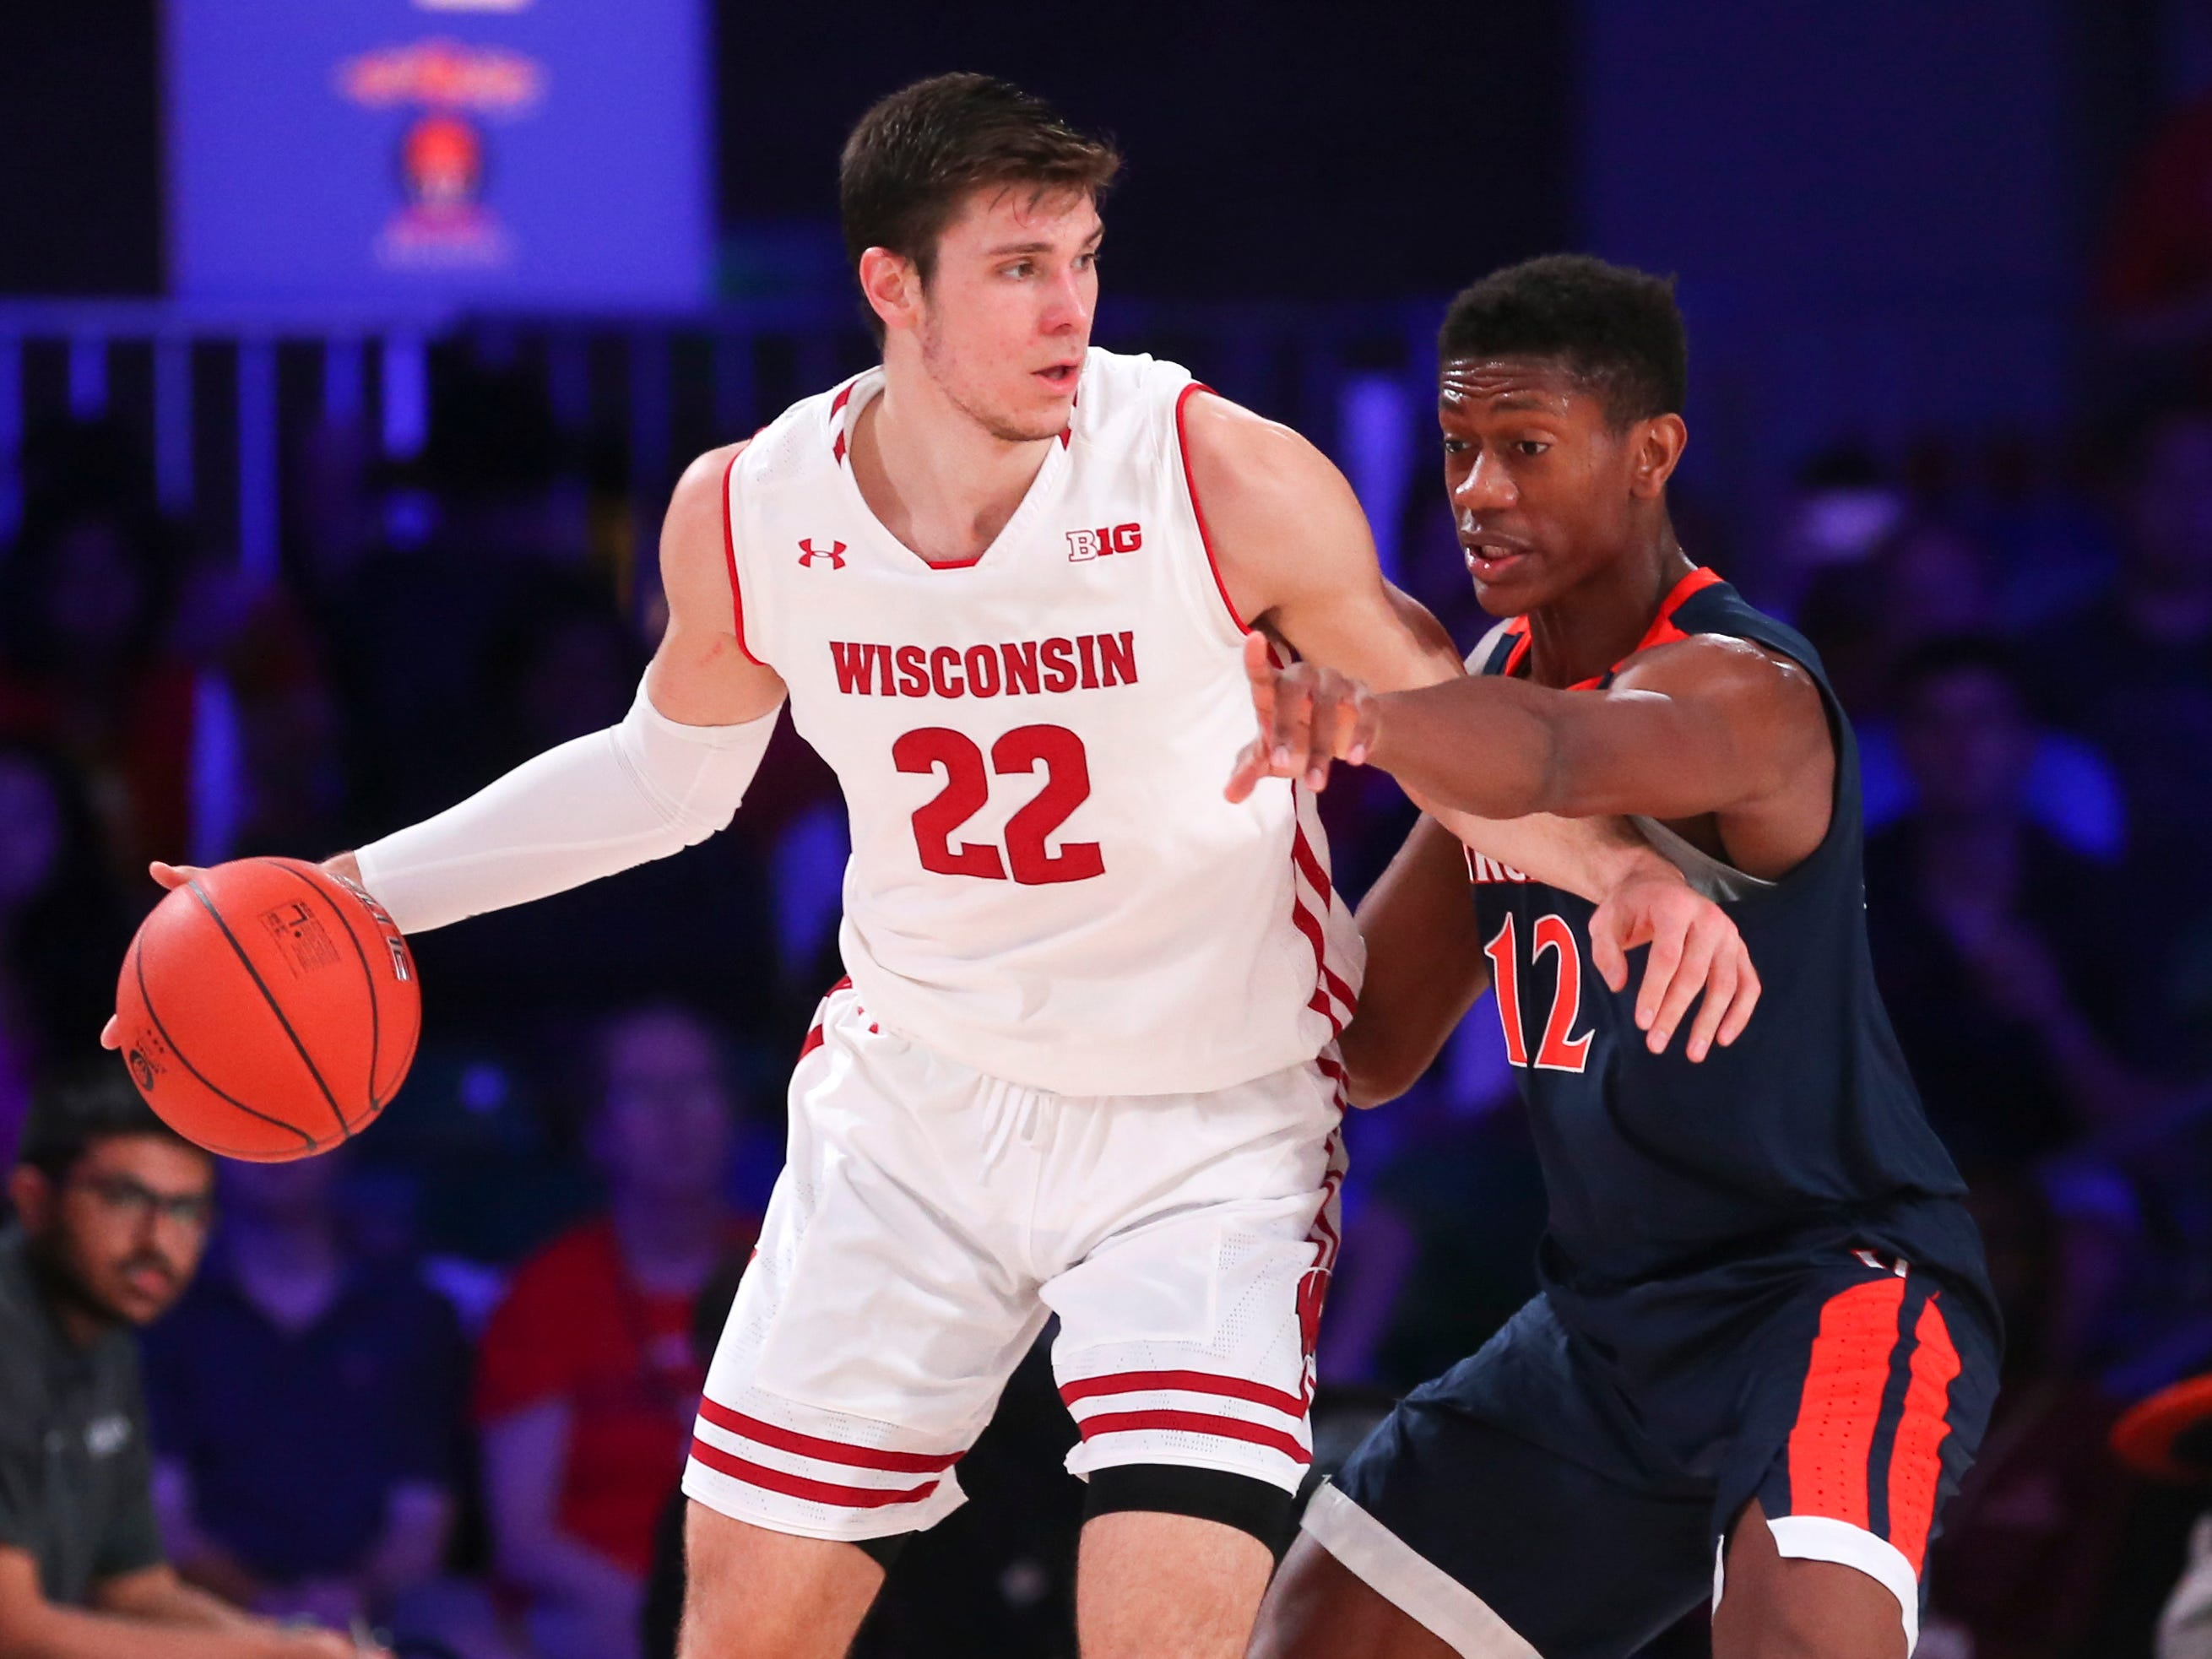 Wisconsin Badgers forward Ethan Happ is guarded by Virginia's De'Andre Hunter.